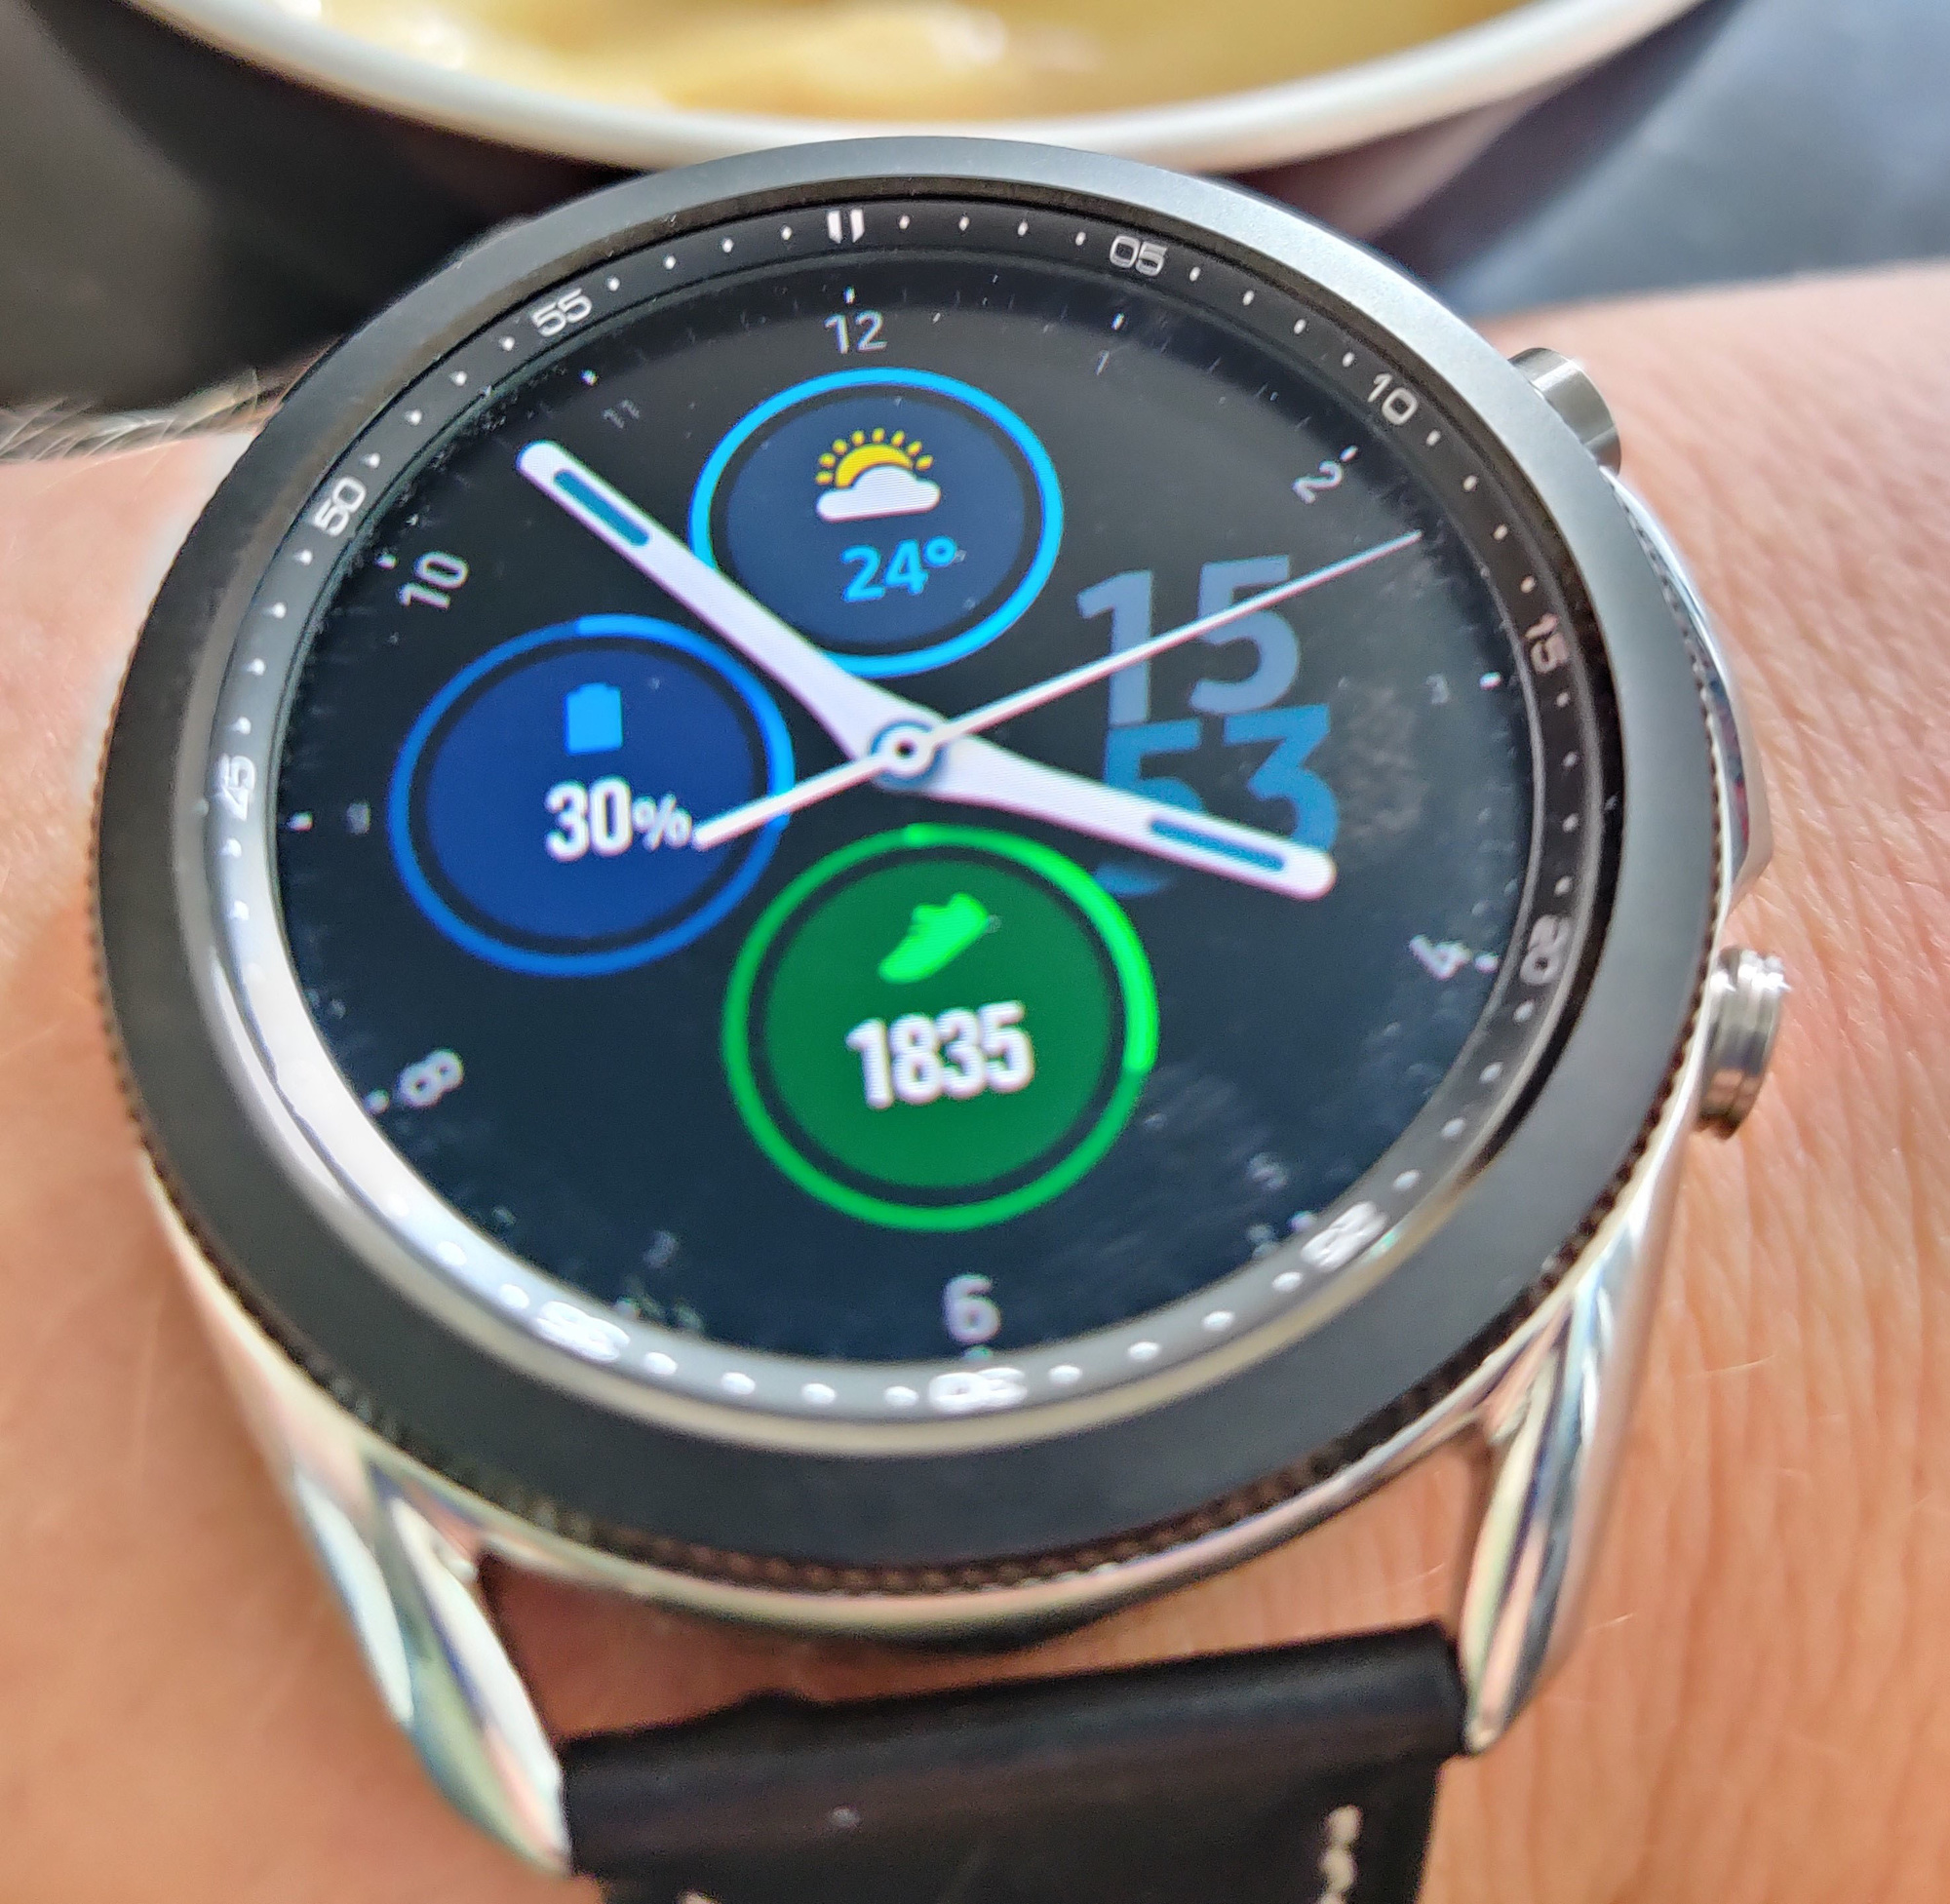 Samsung Galaxy Watch 3, PVL